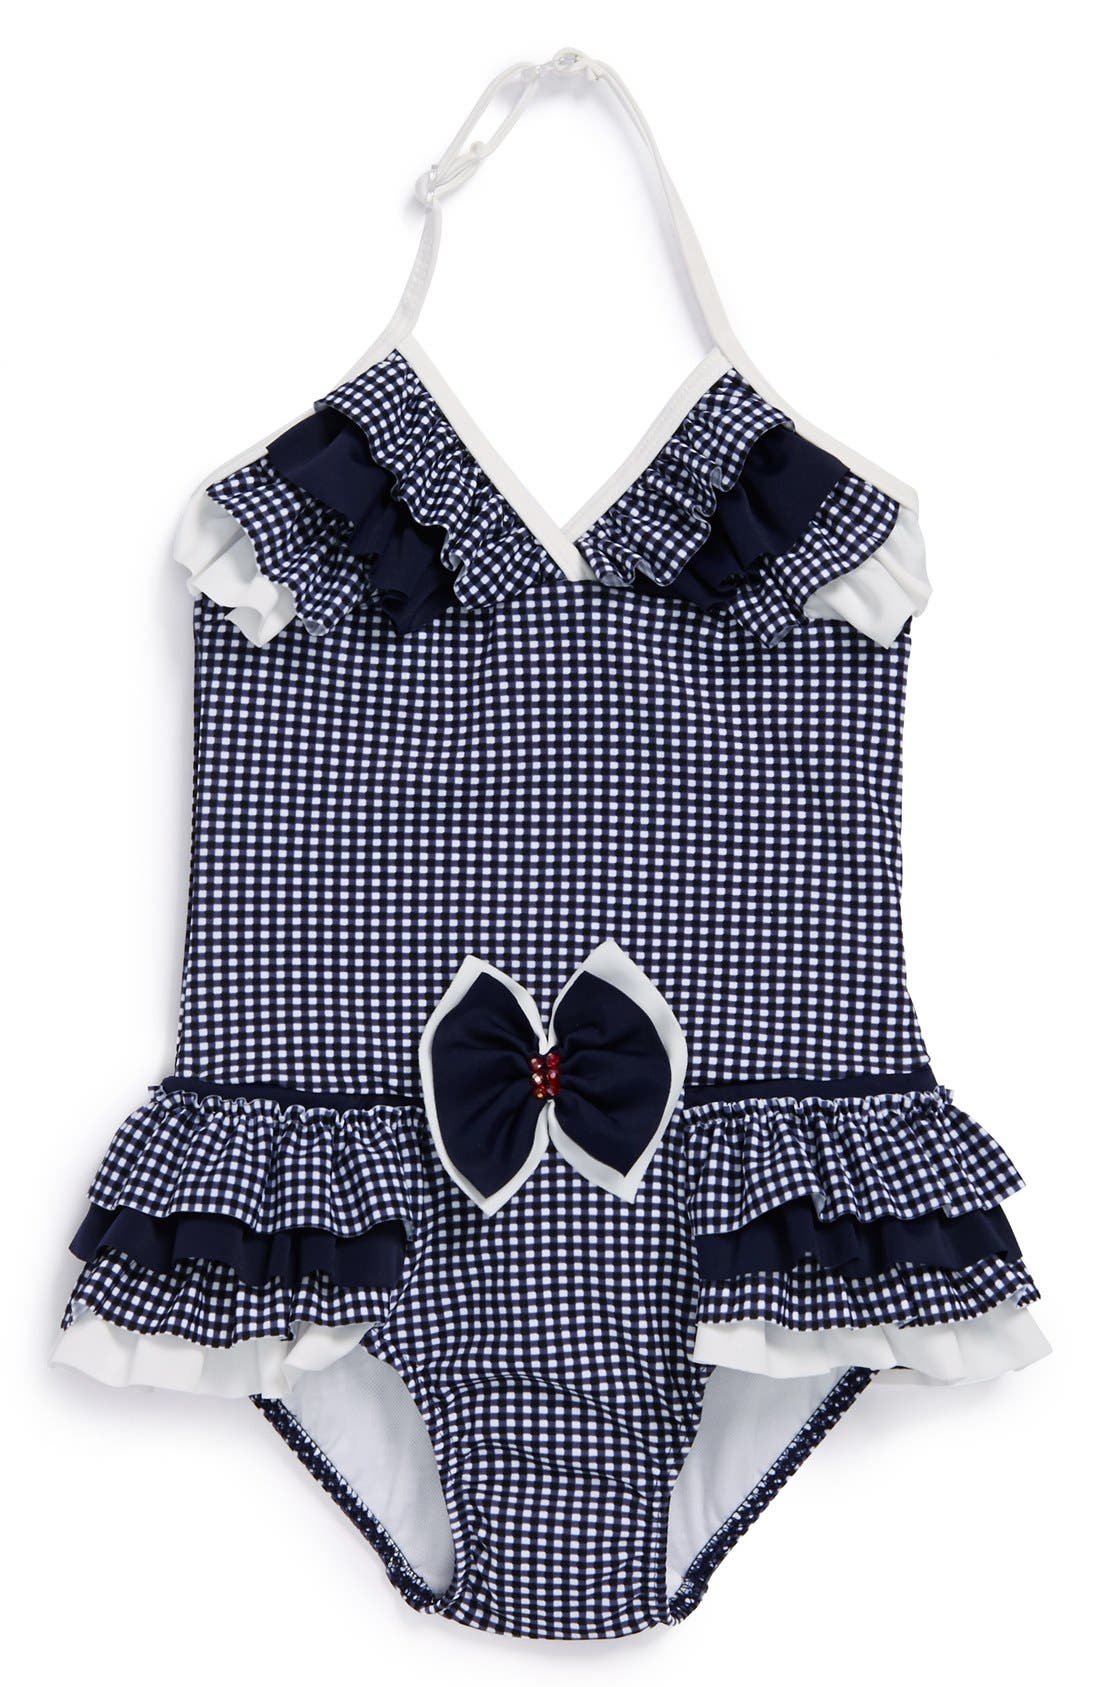 Main Image - Isobella & Chloe 'Simply Nautical' One-Piece Swimsuit (Toddler Girls)